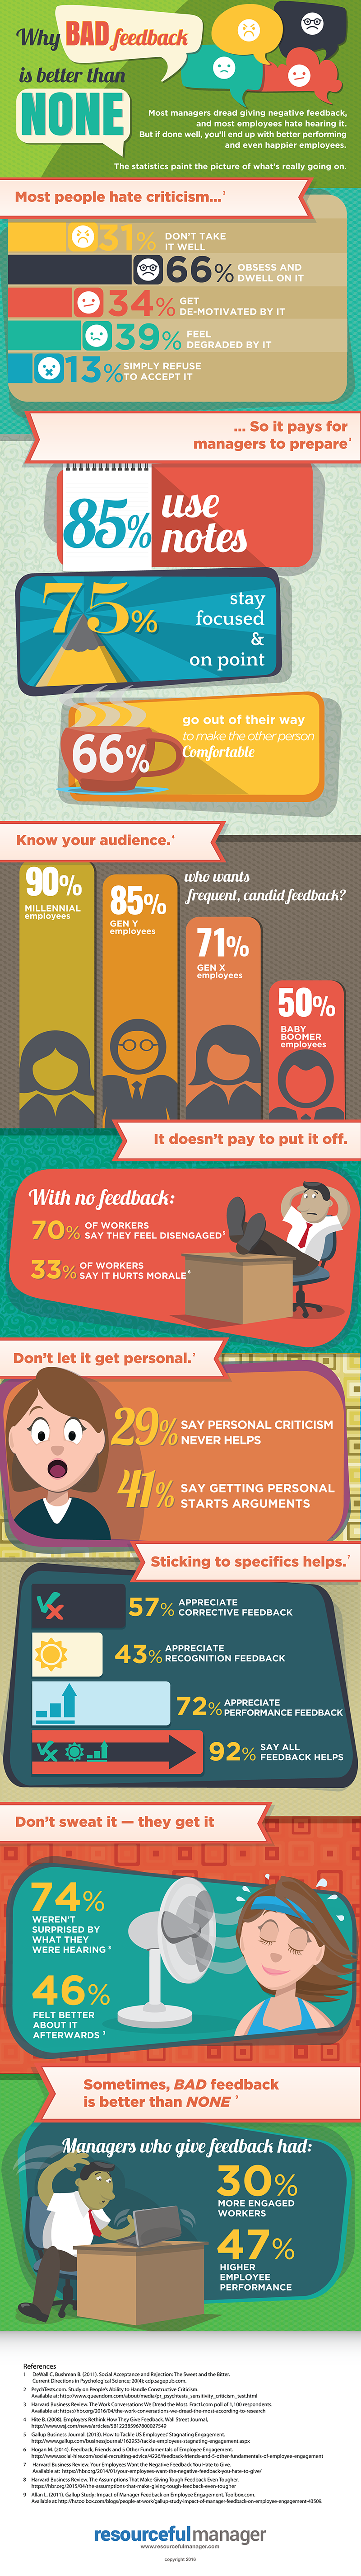 resourceful-manager-negative-feedback-infographic_2.png